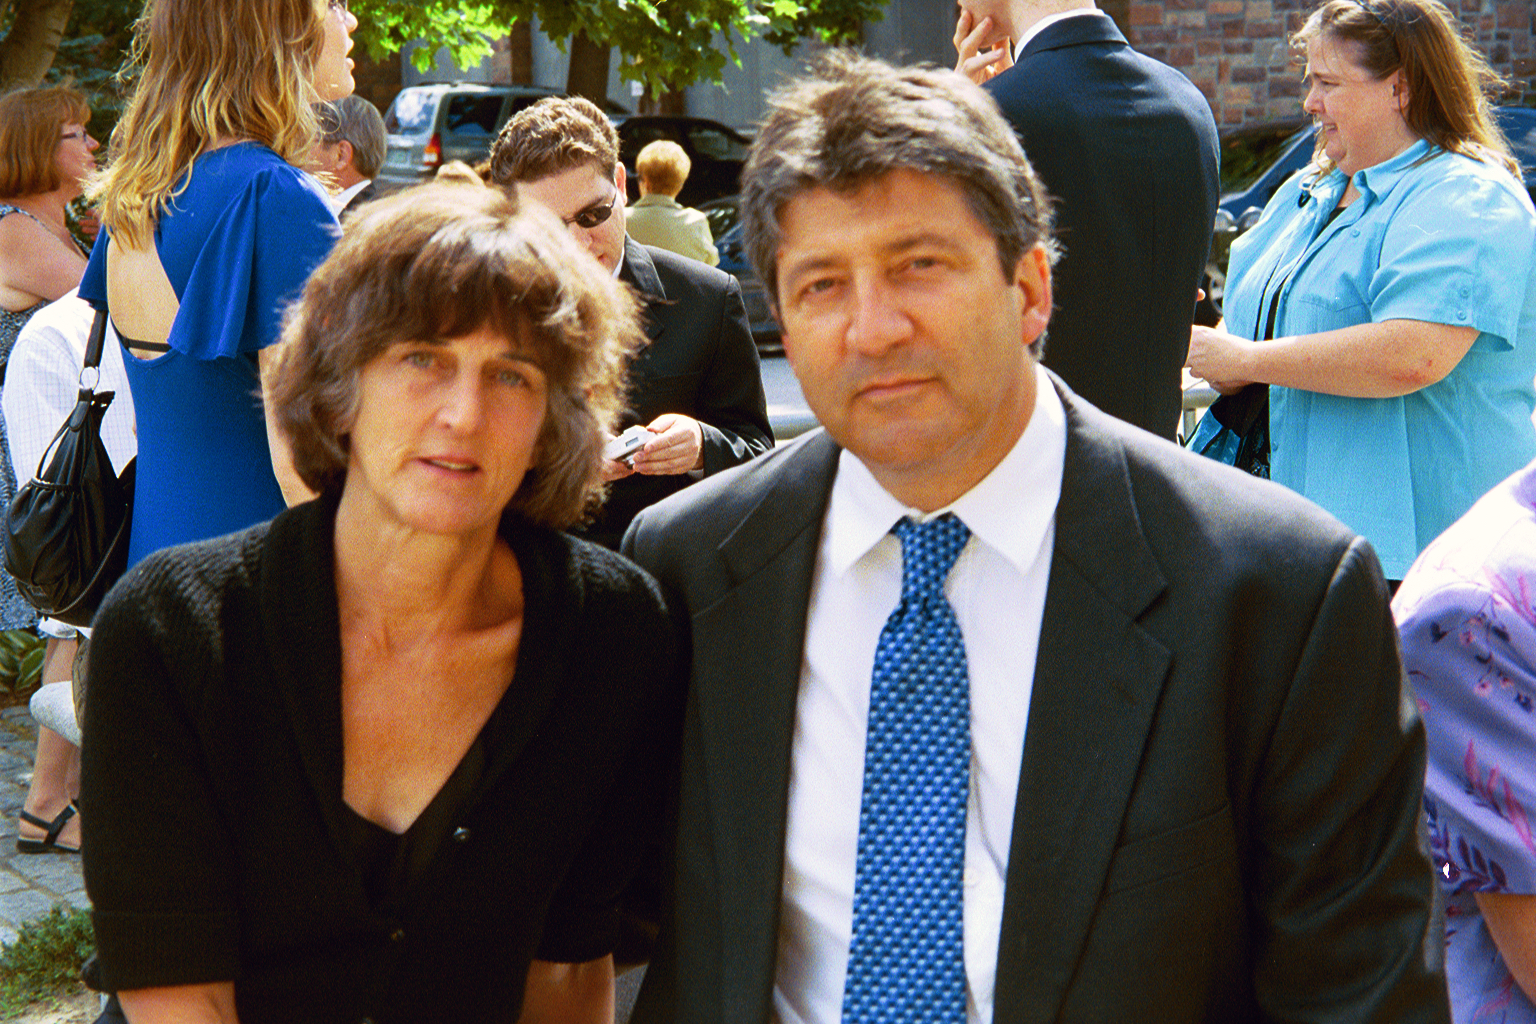 Eric and his wife, novelist Kathryn Davis